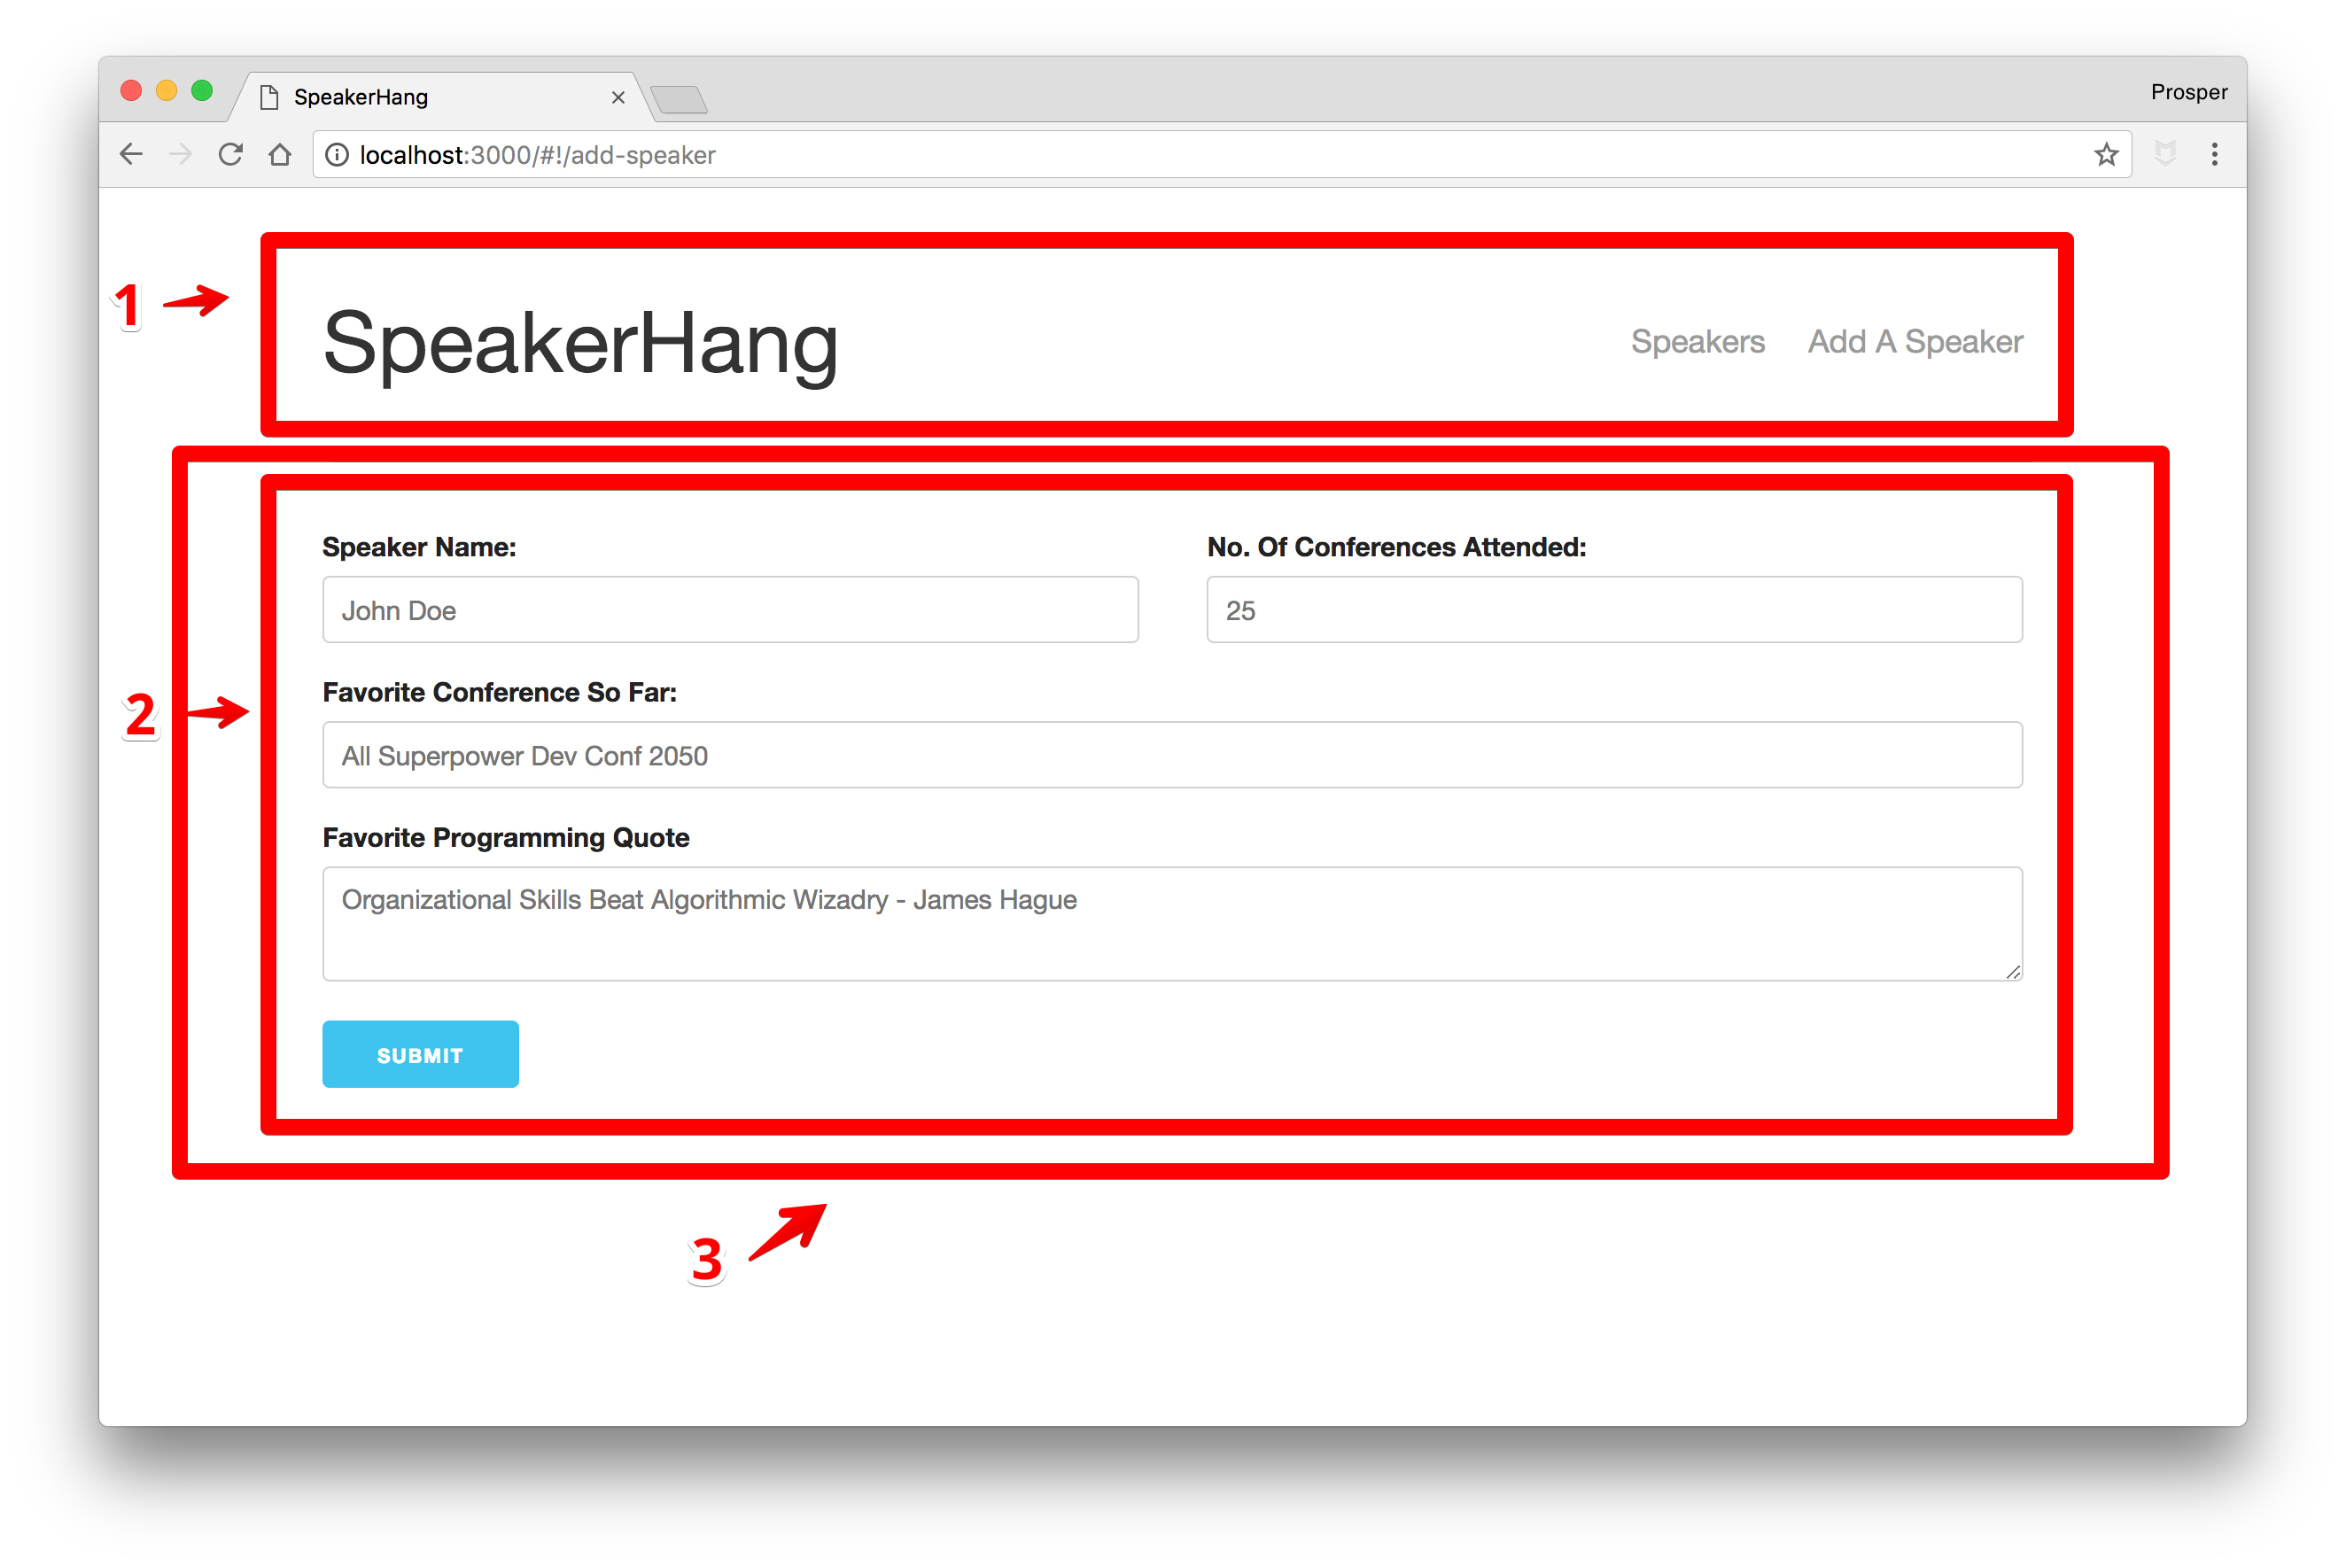 SpeakerHang - Initial component visualization